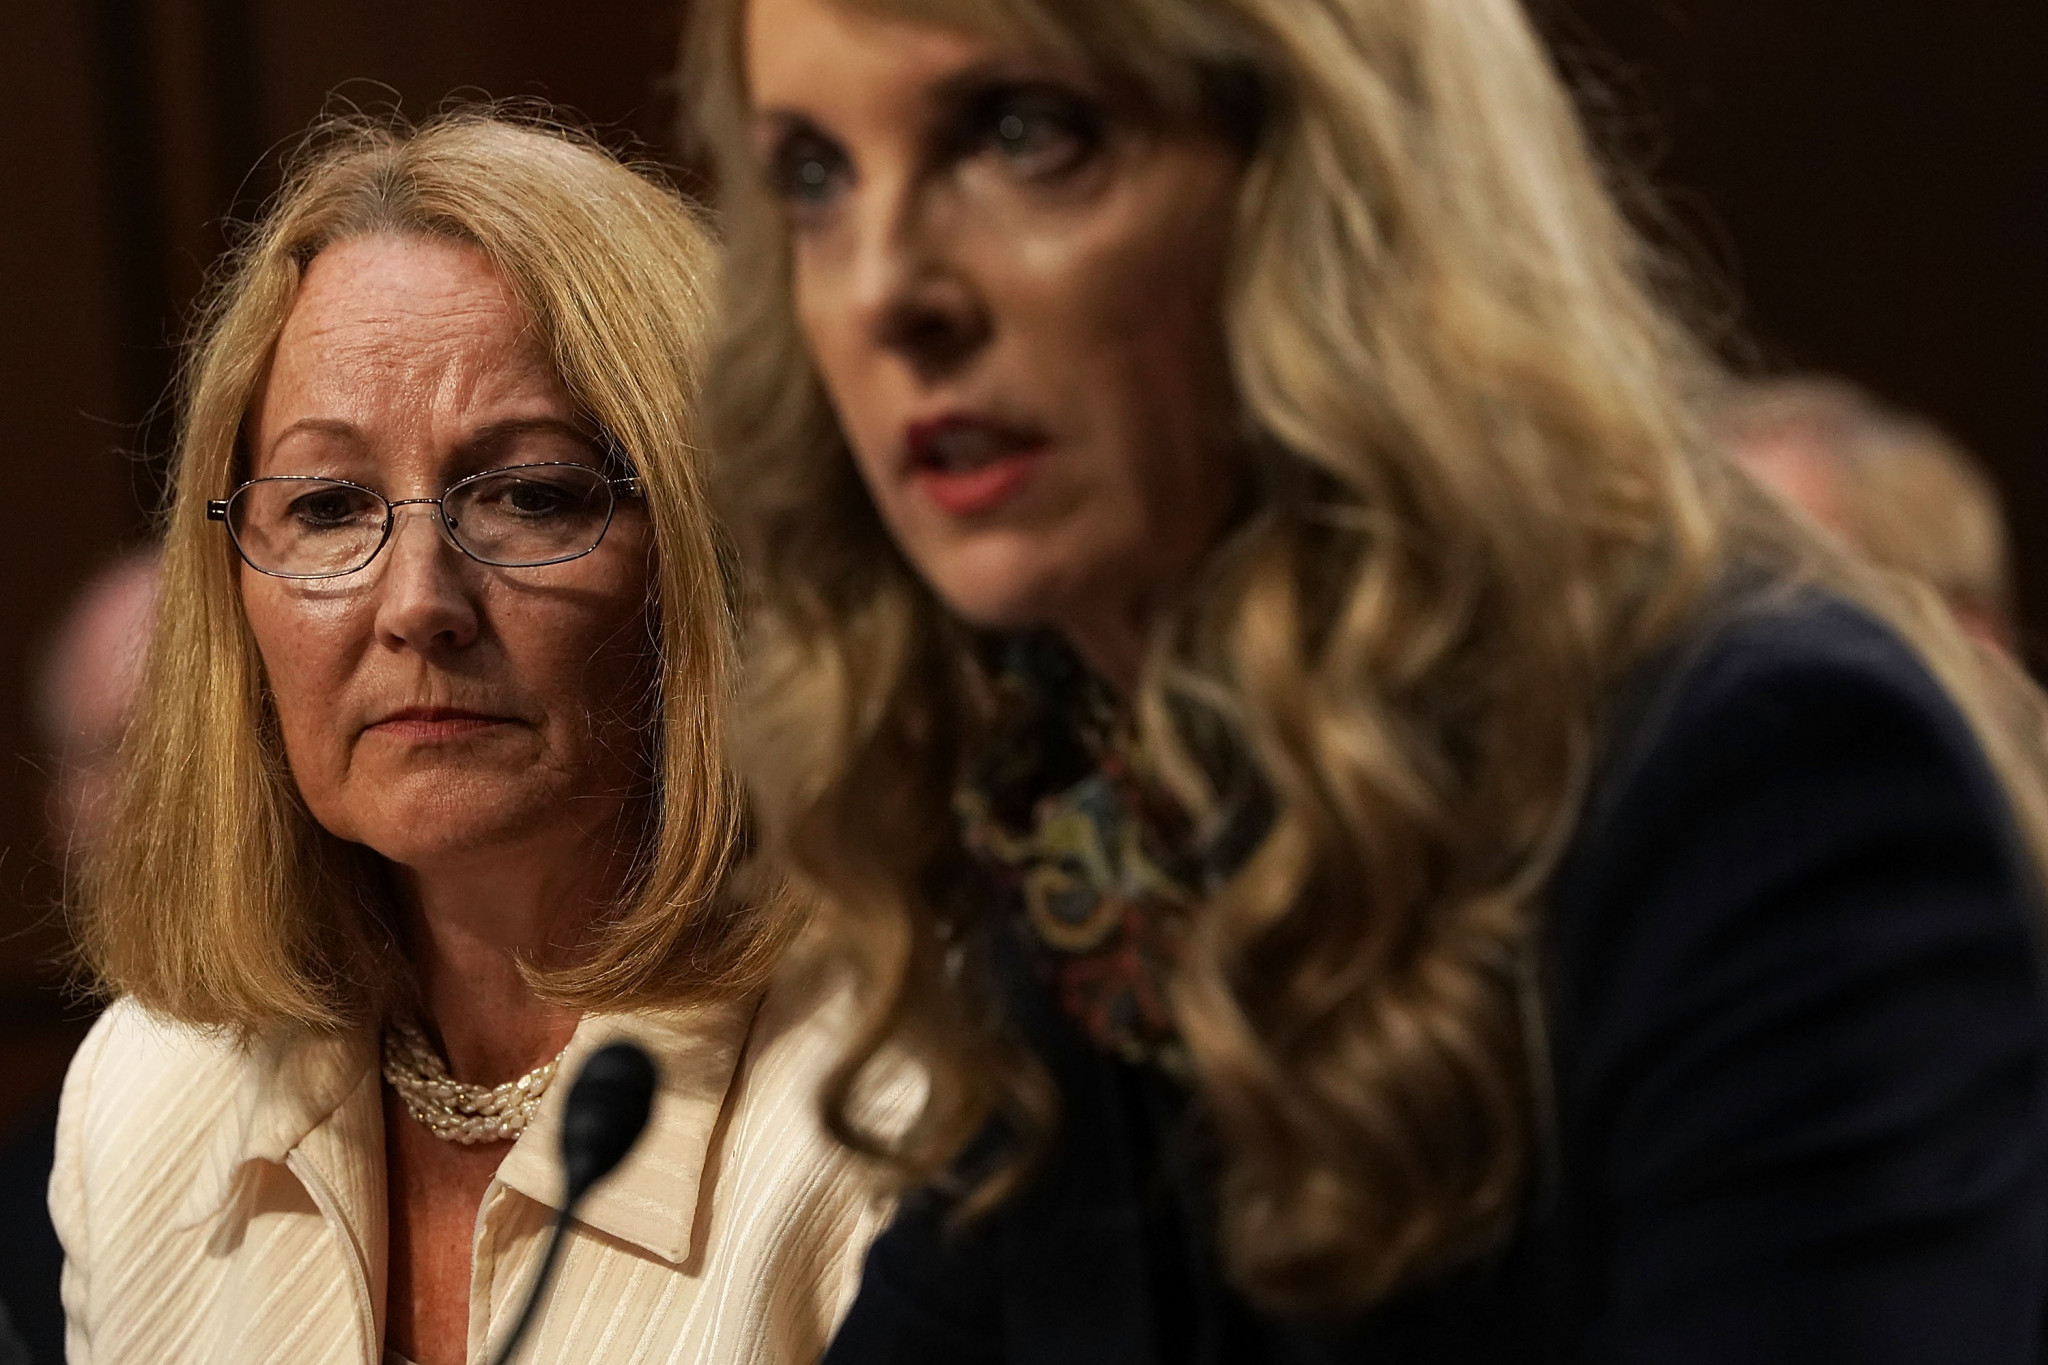 United States Olympic Committee chair Susanne Lyons, left, has claimed the body will not file for bankruptcy despite several lawsuits against it following the gymnastics scandal involving Larry Nassar ©Getty Images